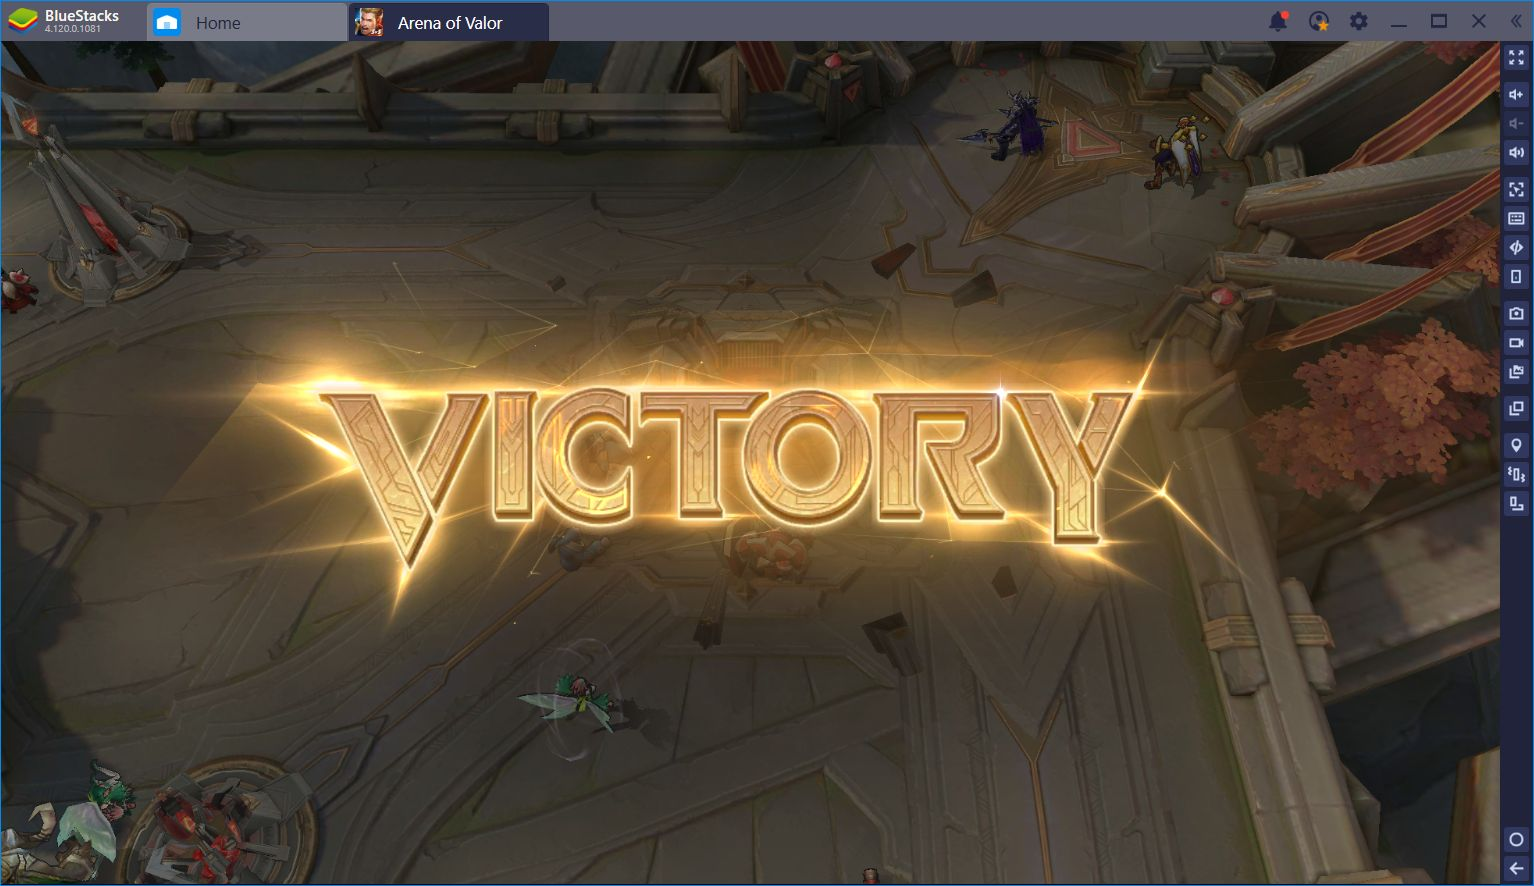 Arena of Valor on BlueStacks: Dominate Using the Keymapping Tool